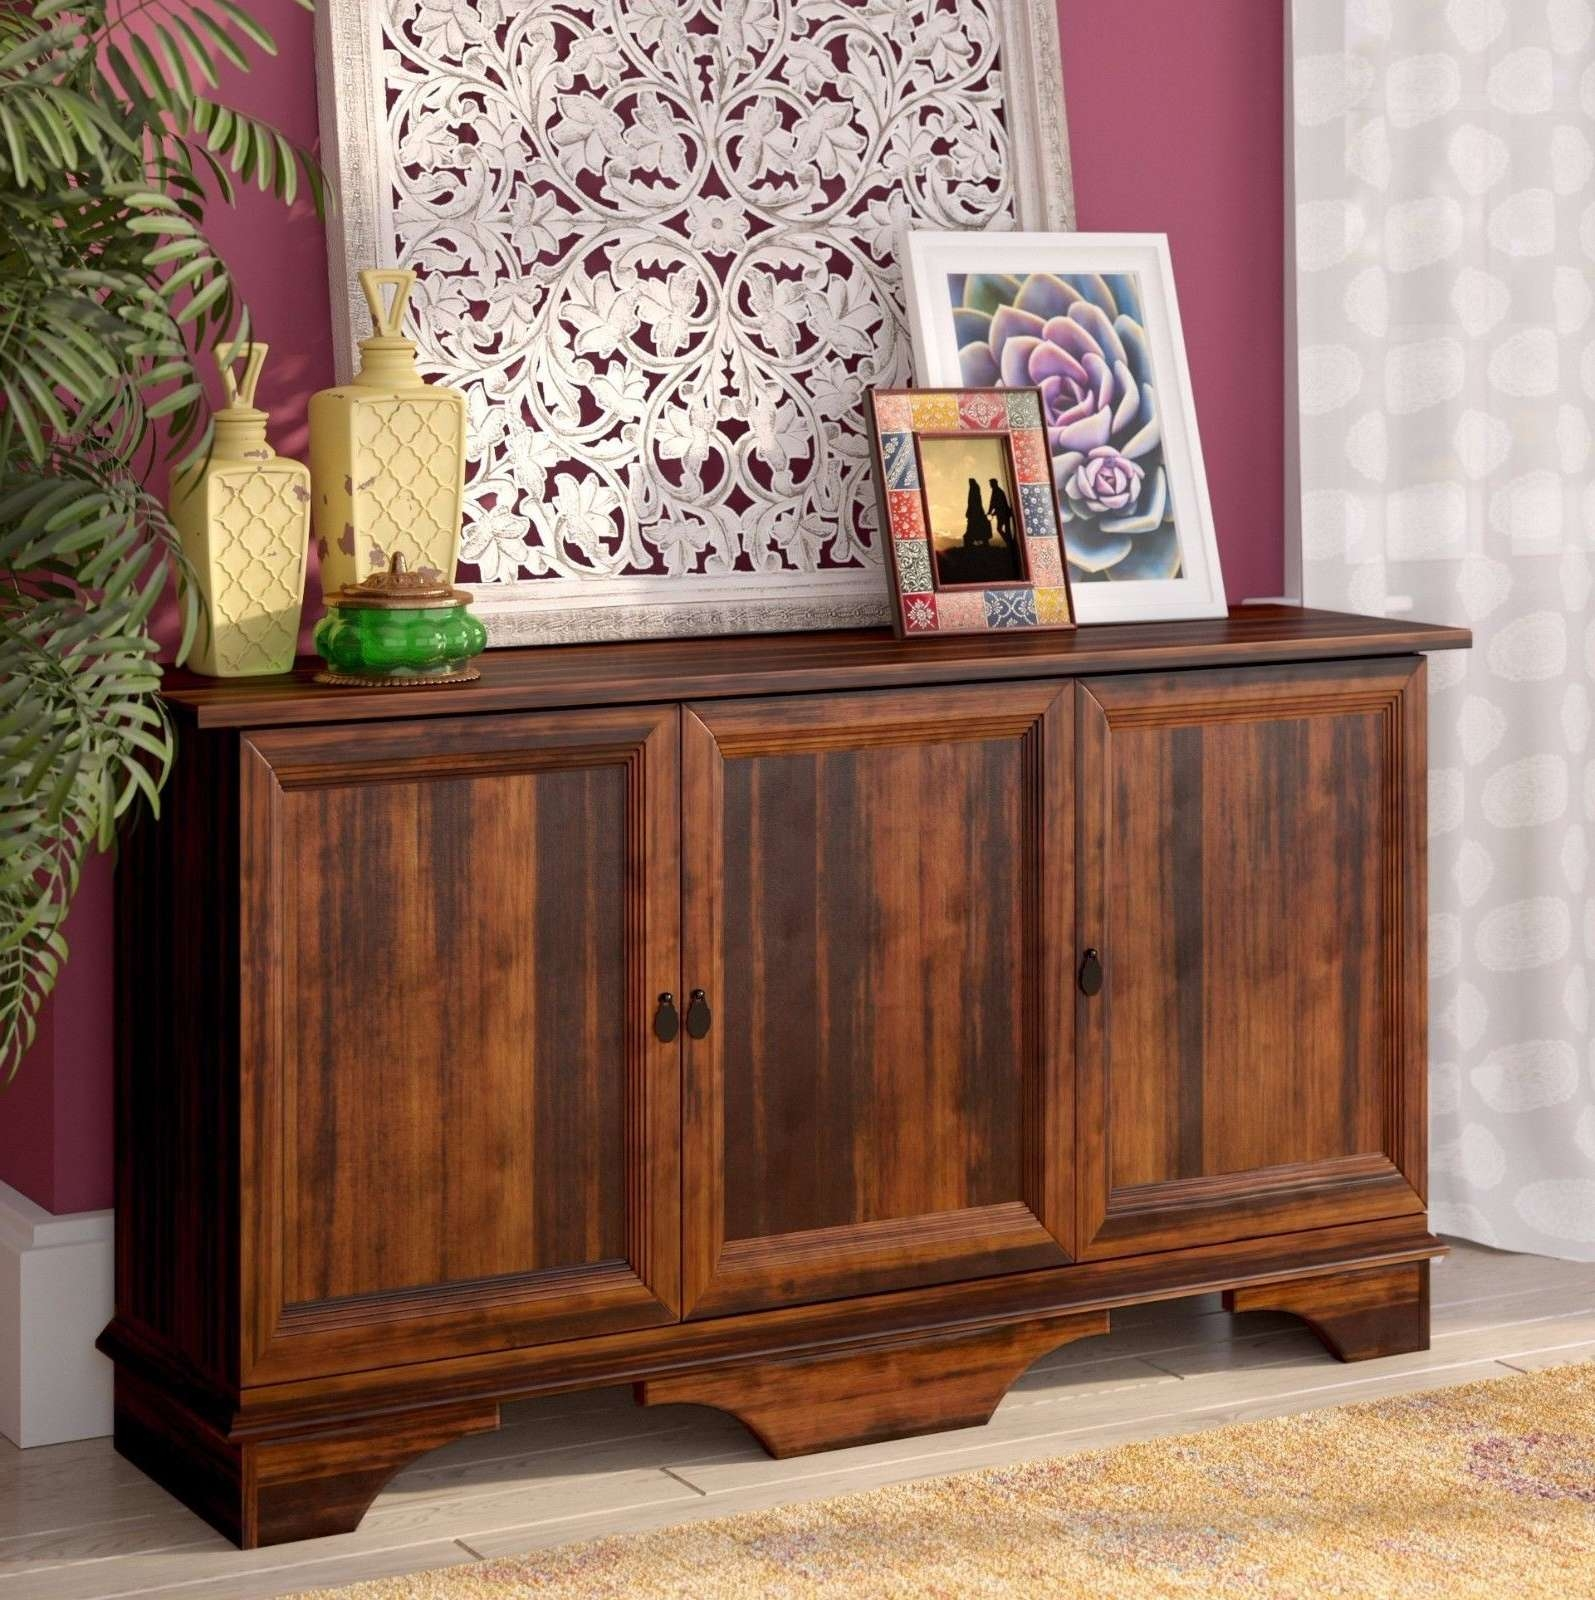 Rustic/primitive Sideboards And Buffets | Ebay Pertaining To Rustic Sideboards Buffets (View 16 of 20)